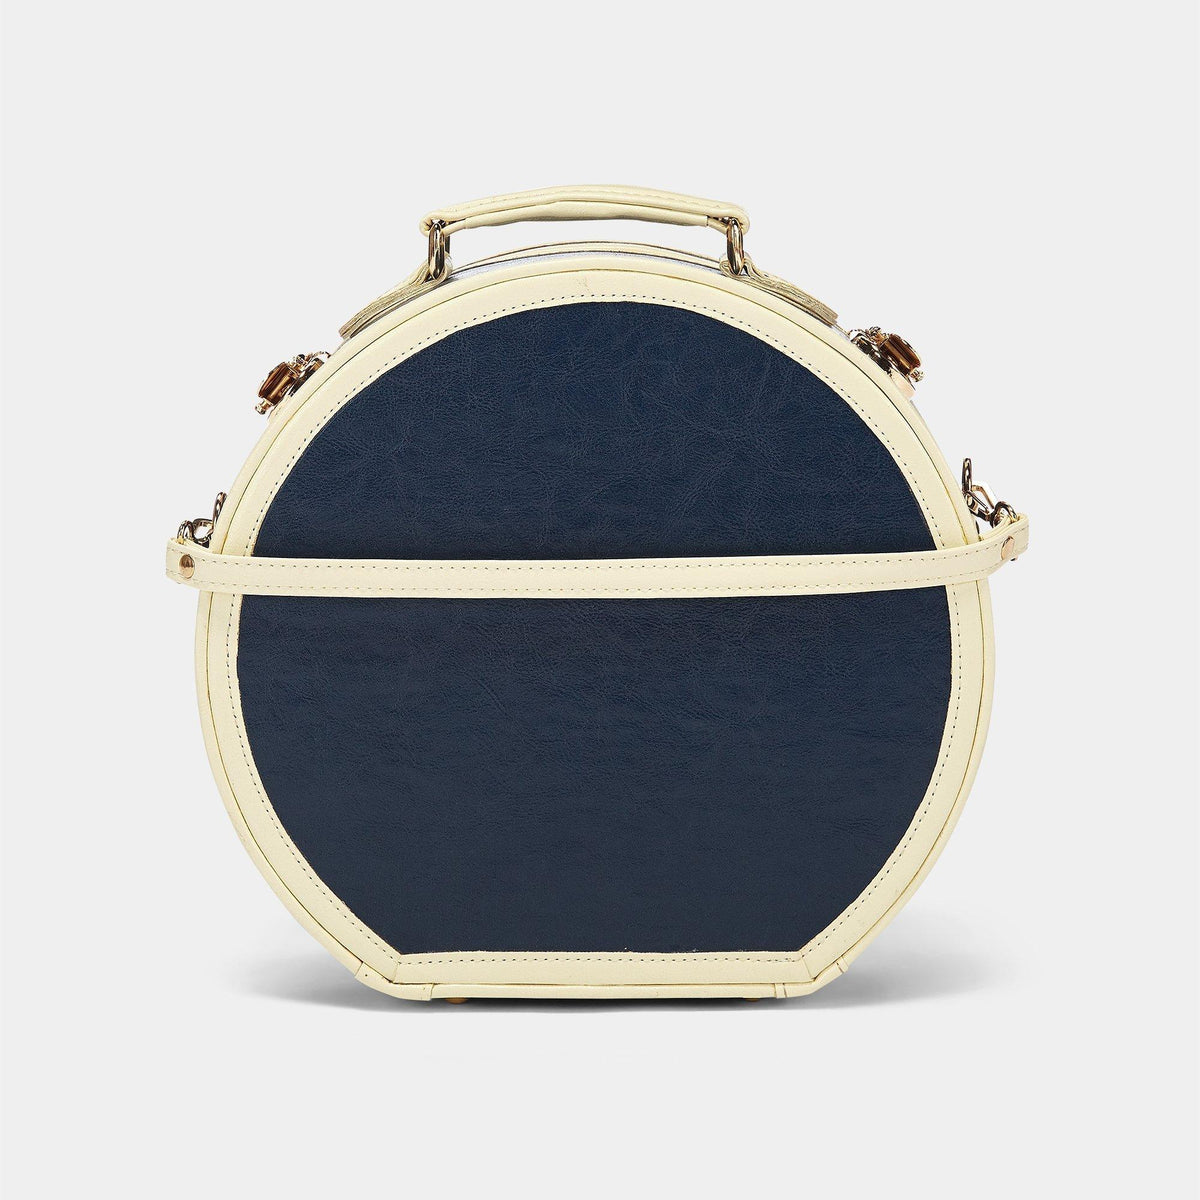 The Entrepreneur Hatbox Small in Navy - Vintage-Inspired Luggage - Exterior Back with Shoulder Strap